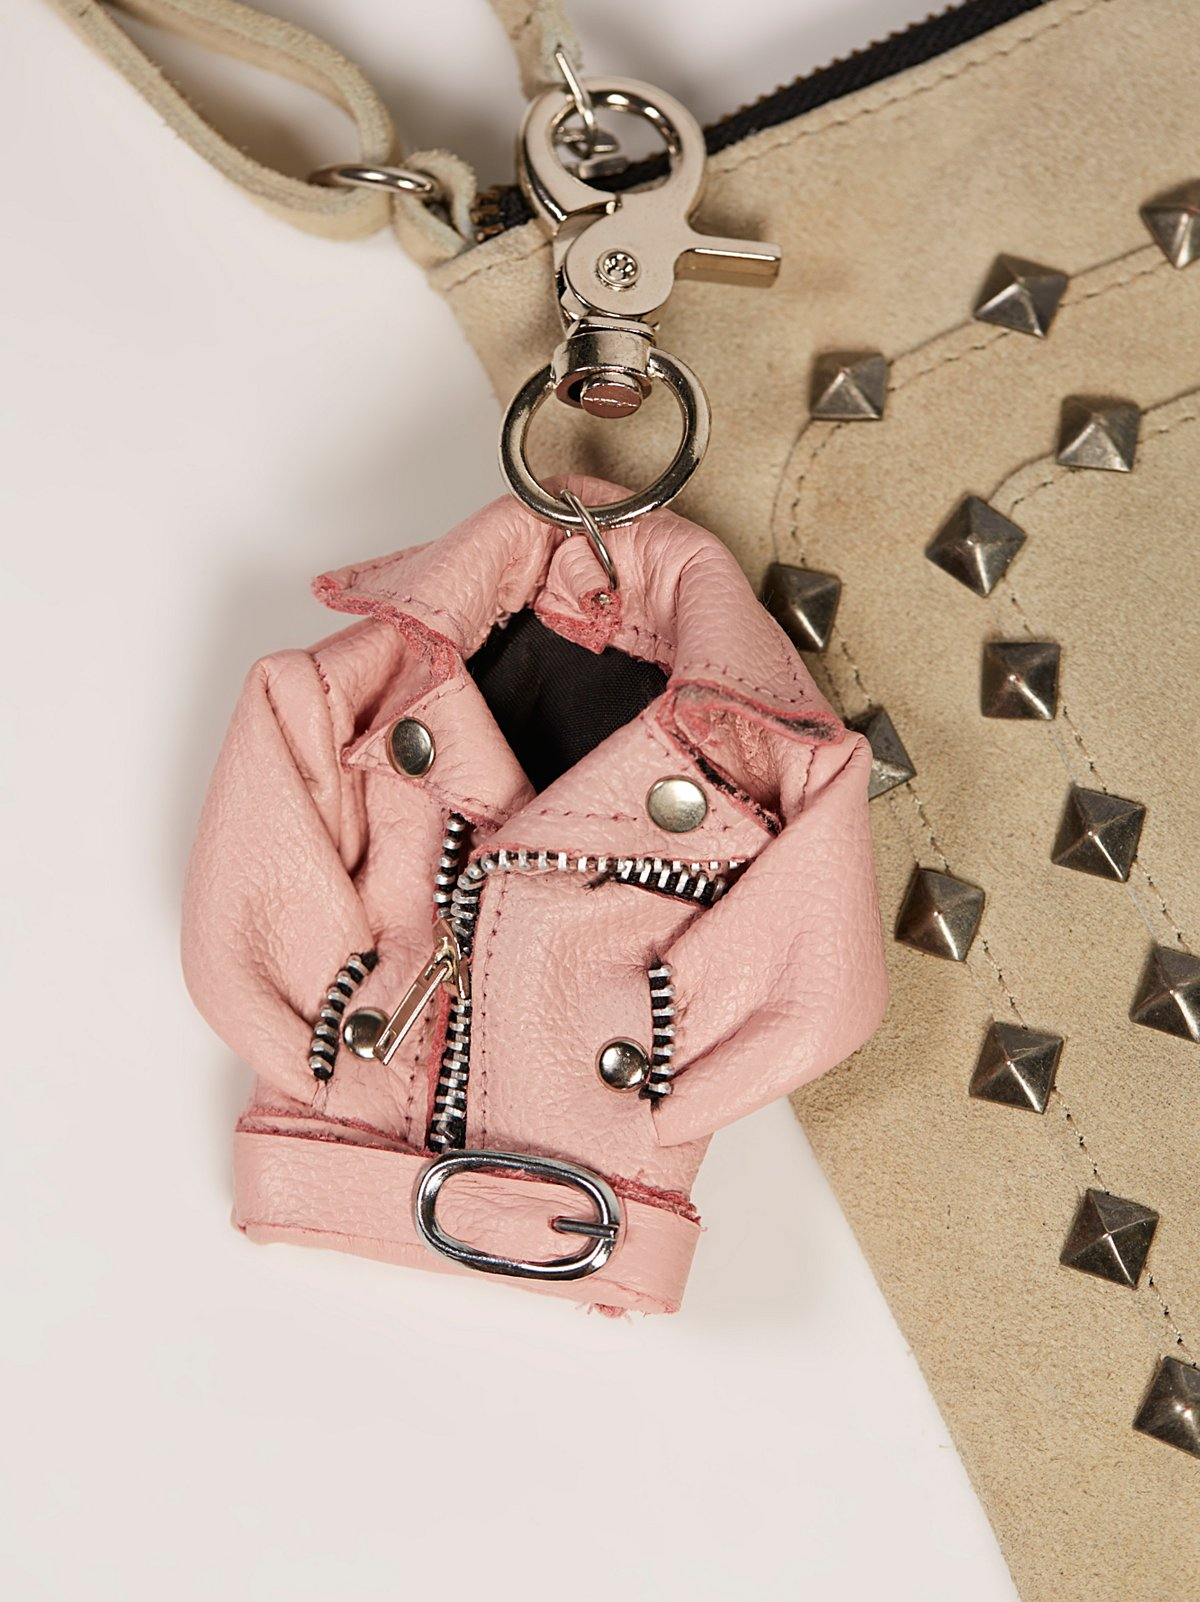 Mini Moto Jacket Bag Charm